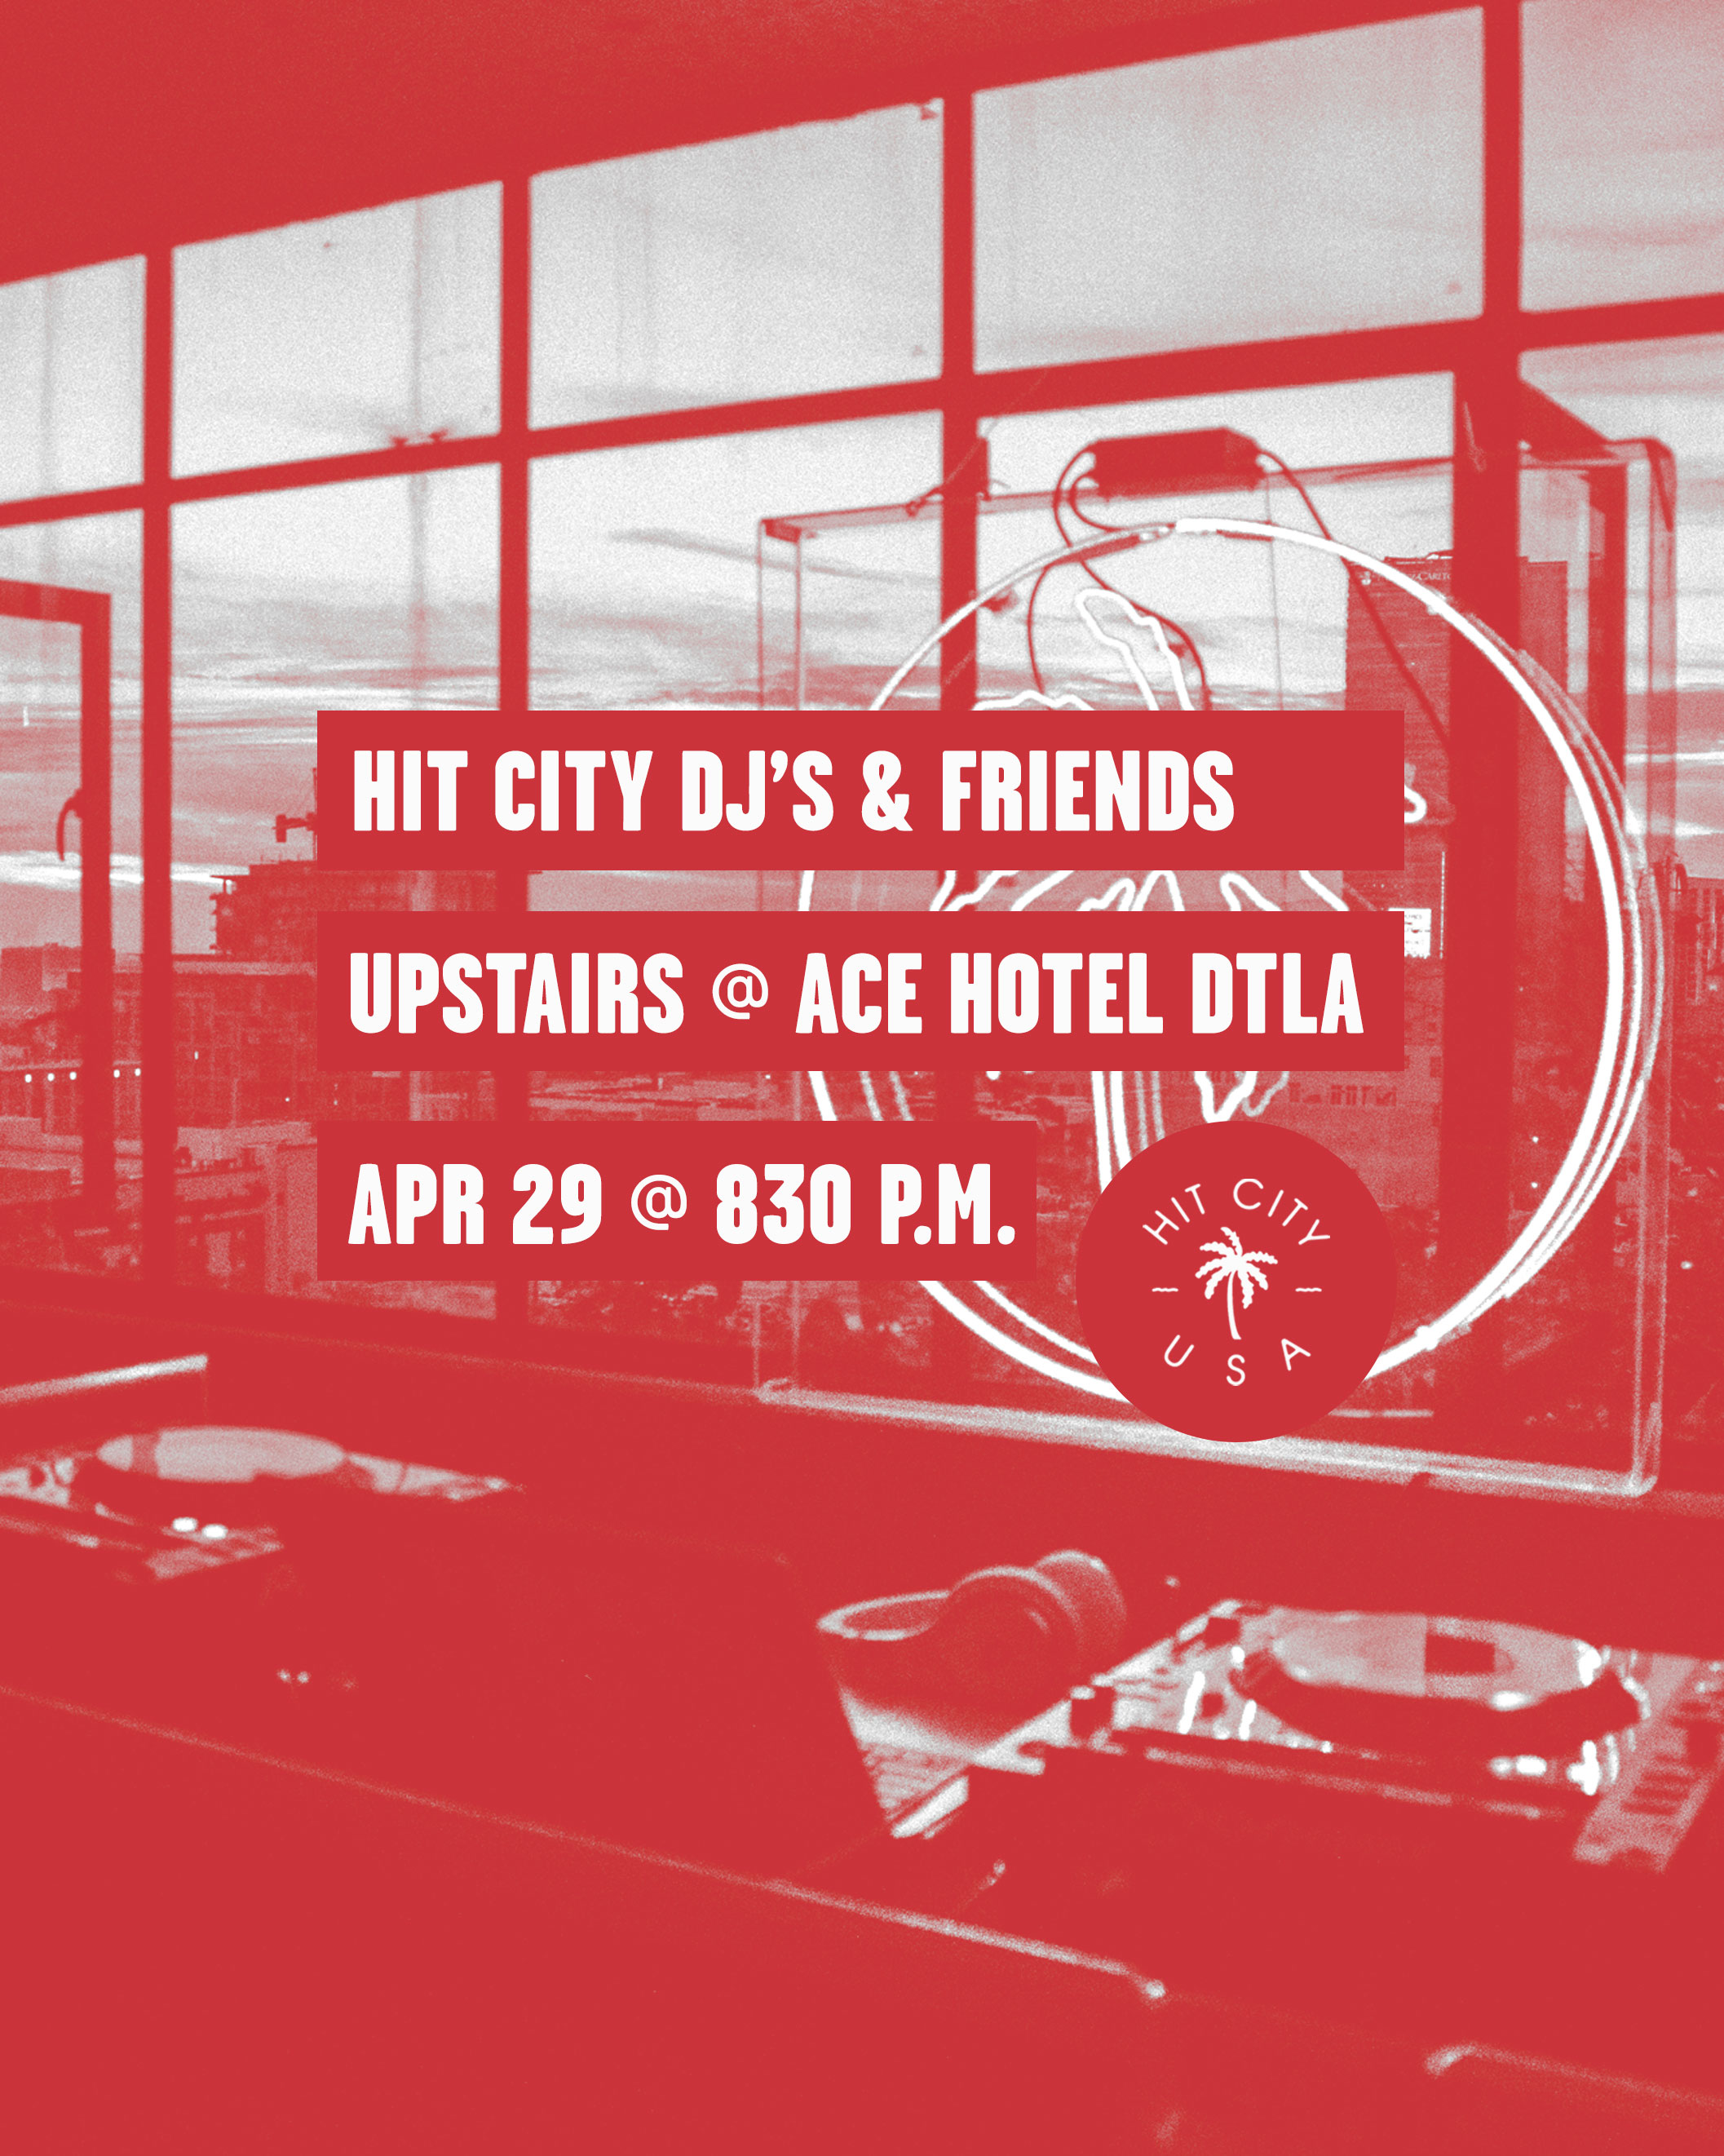 Hit City DJ's & Friends Upstairs at Ace Hotel DTLA